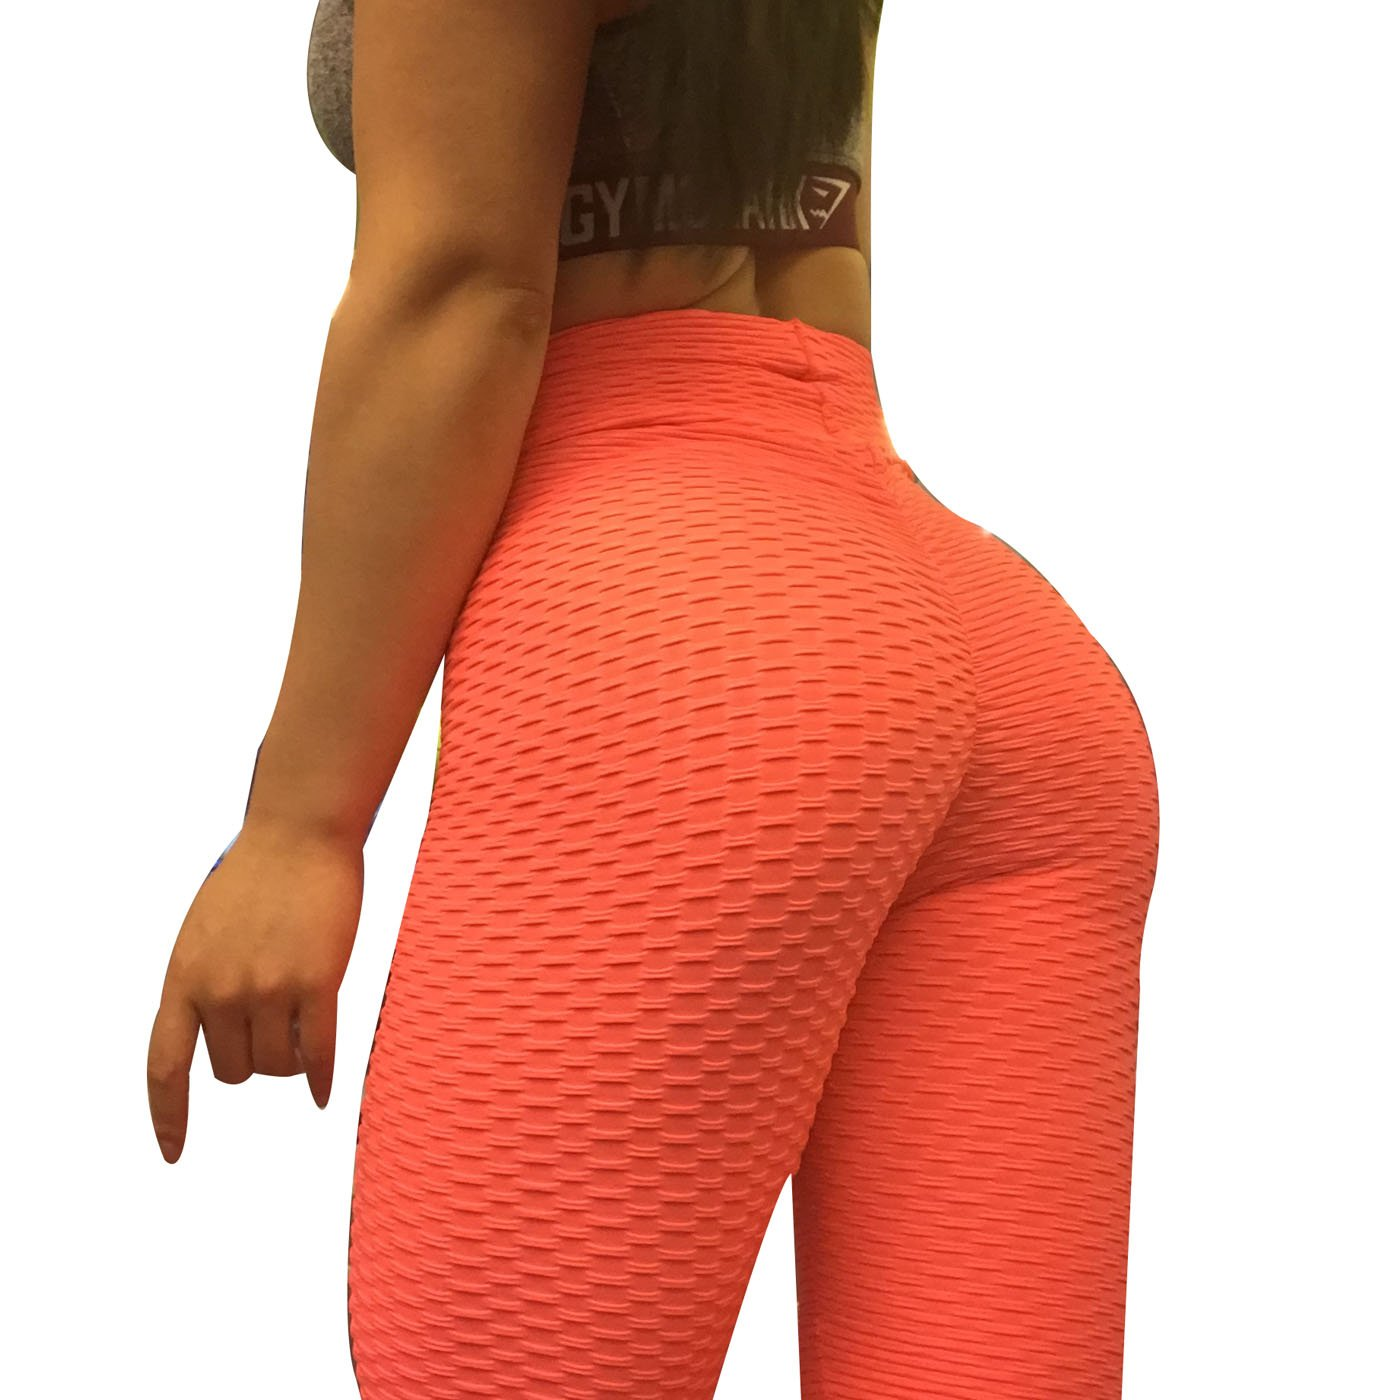 CPHMP Women's High Waist Ruched Butt Lifting Slimming Leggings Textured Stretchy Skinny Yoga Pants Thights (M, Orange)